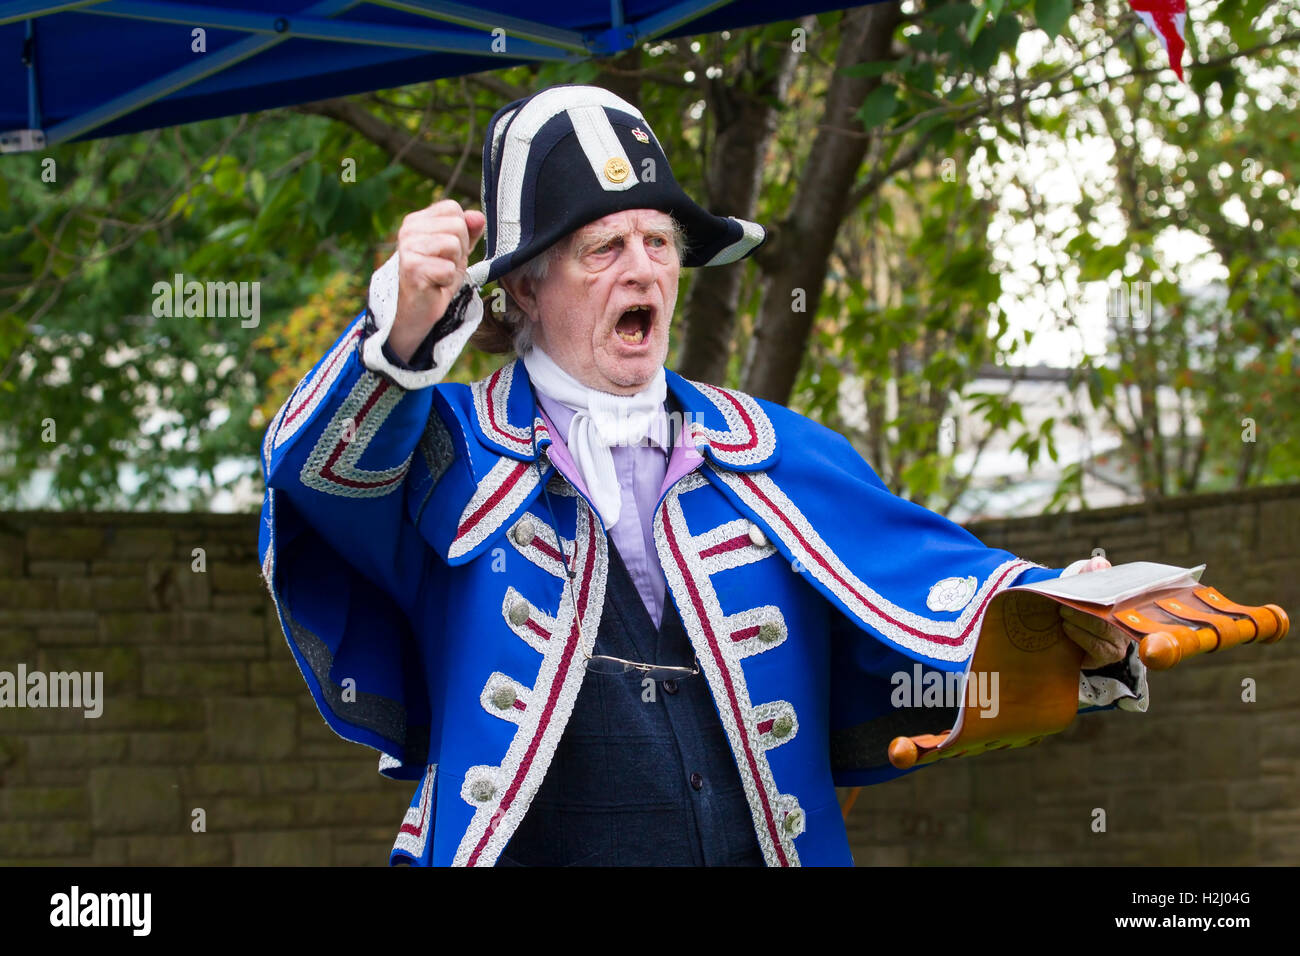 A Town Crier loudly proclaiming a message at the annual Huddersfield Town Crier's competition 2016 - Stock Image